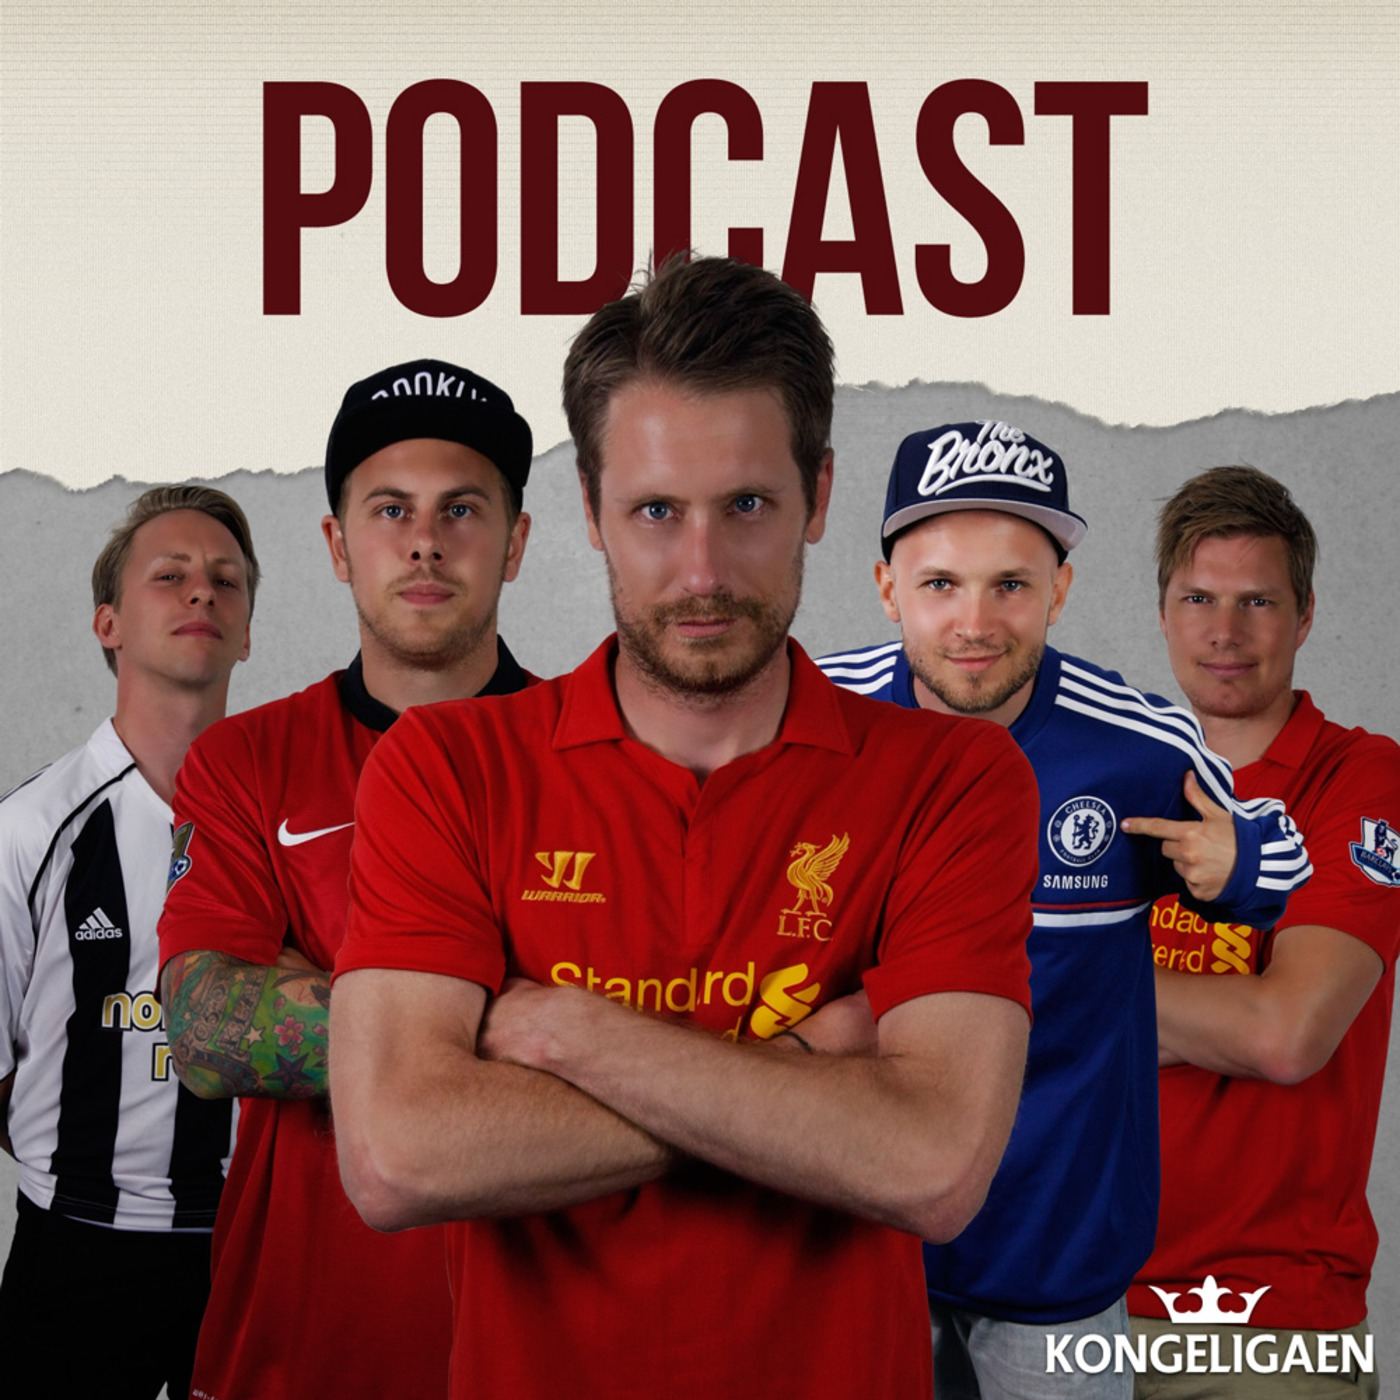 Kongeligaen's Podcast